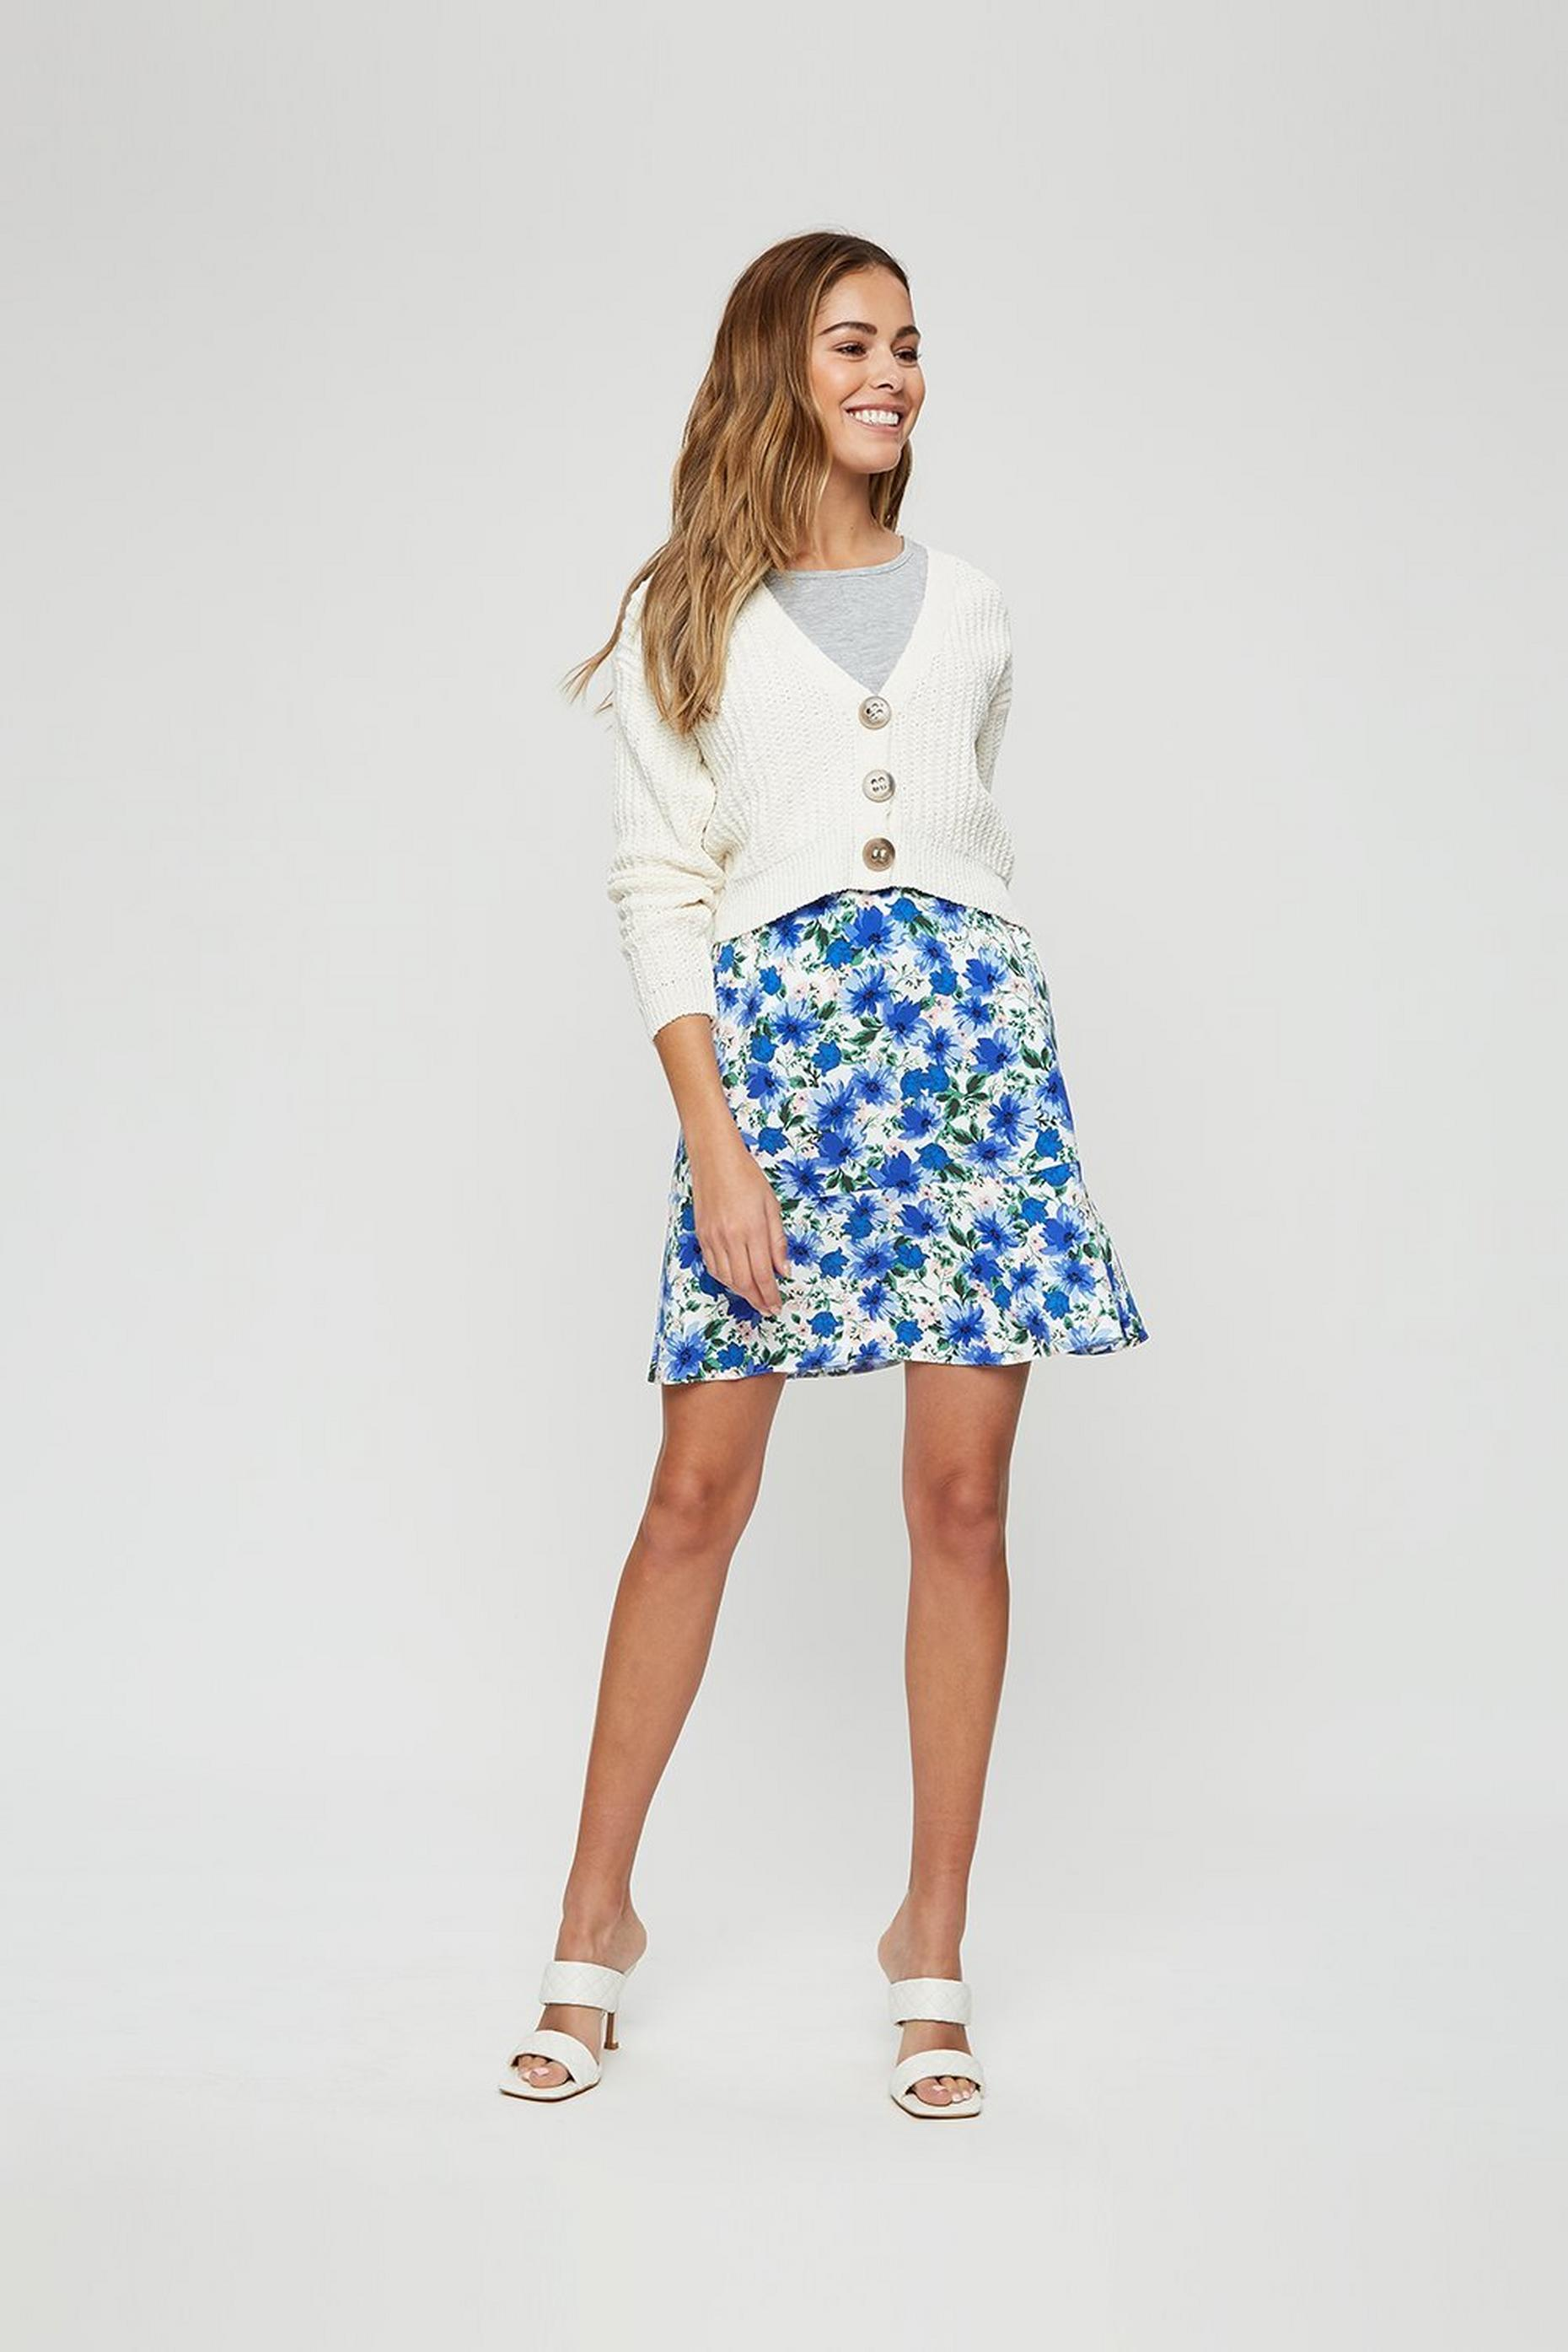 Blue Floral Print Flippy Mini Skirt